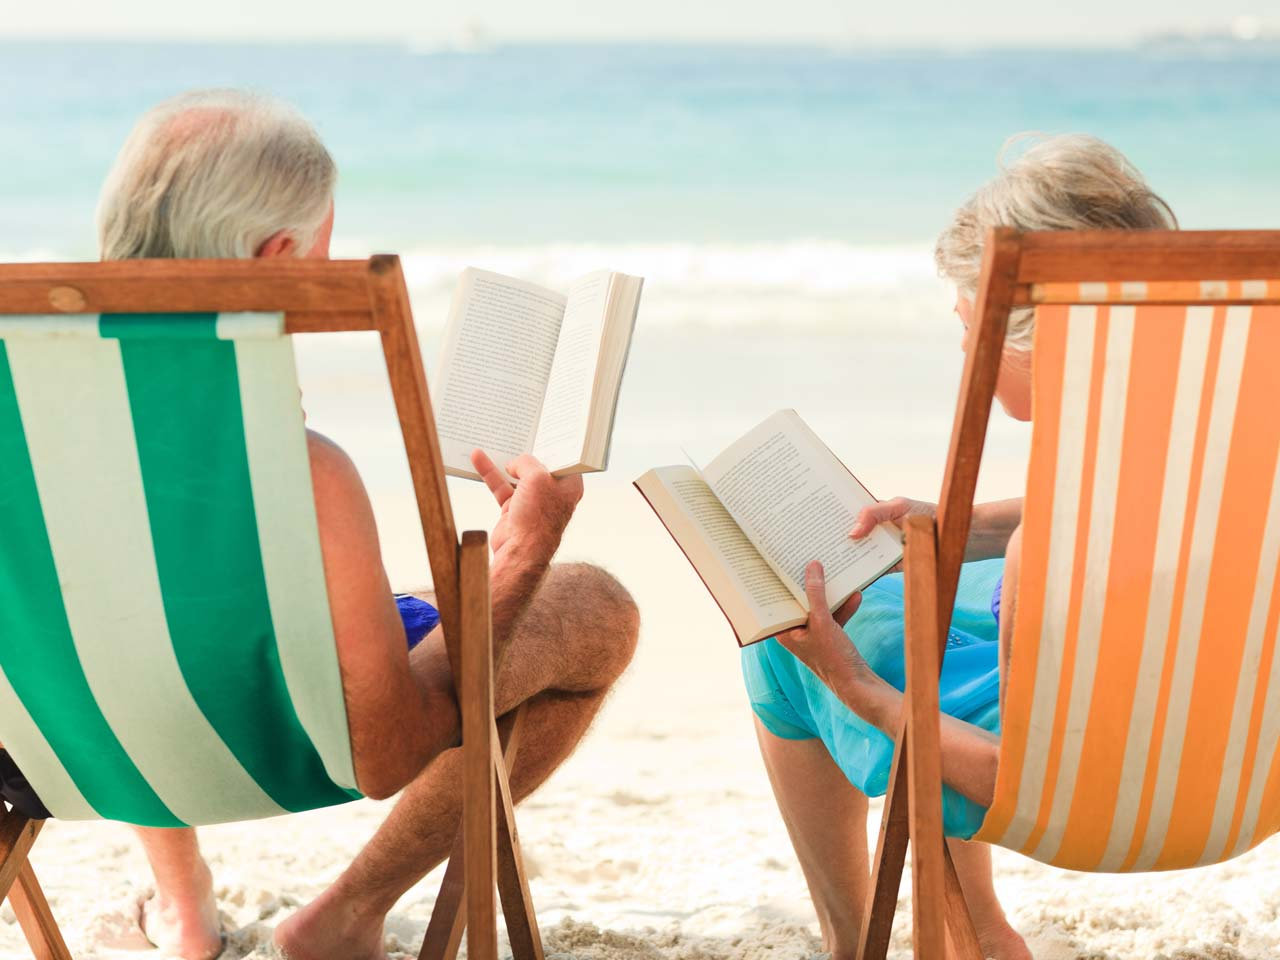 Deckchair perfection: our guide to the best summer holiday reads for 2015